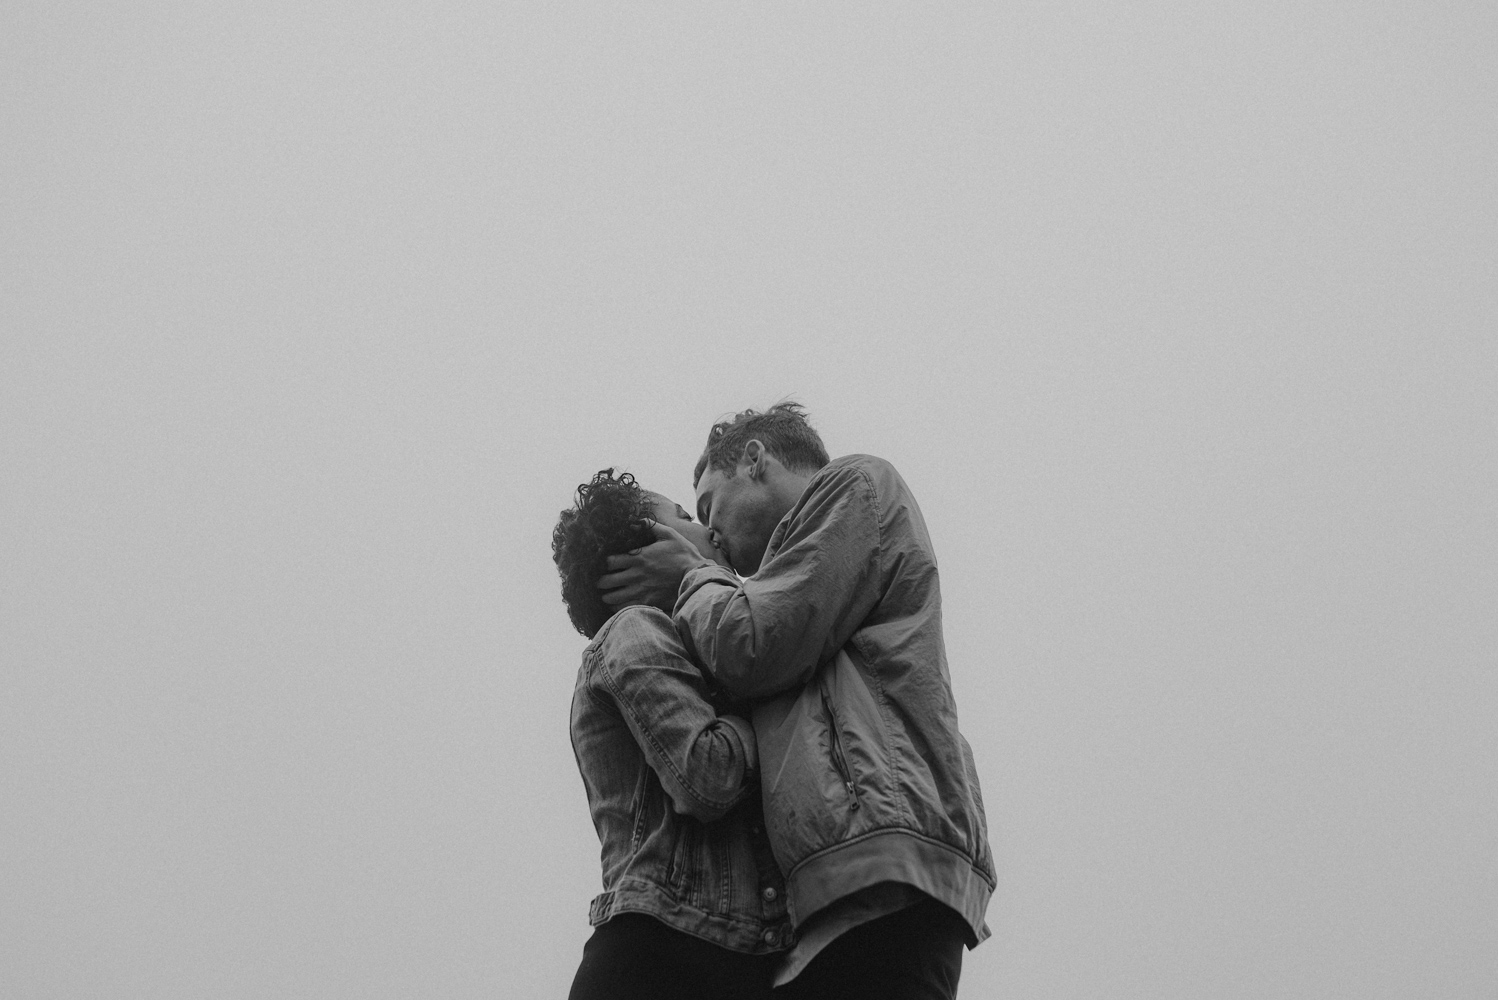 San Francisco foggy engagement session couple embracing each other photo